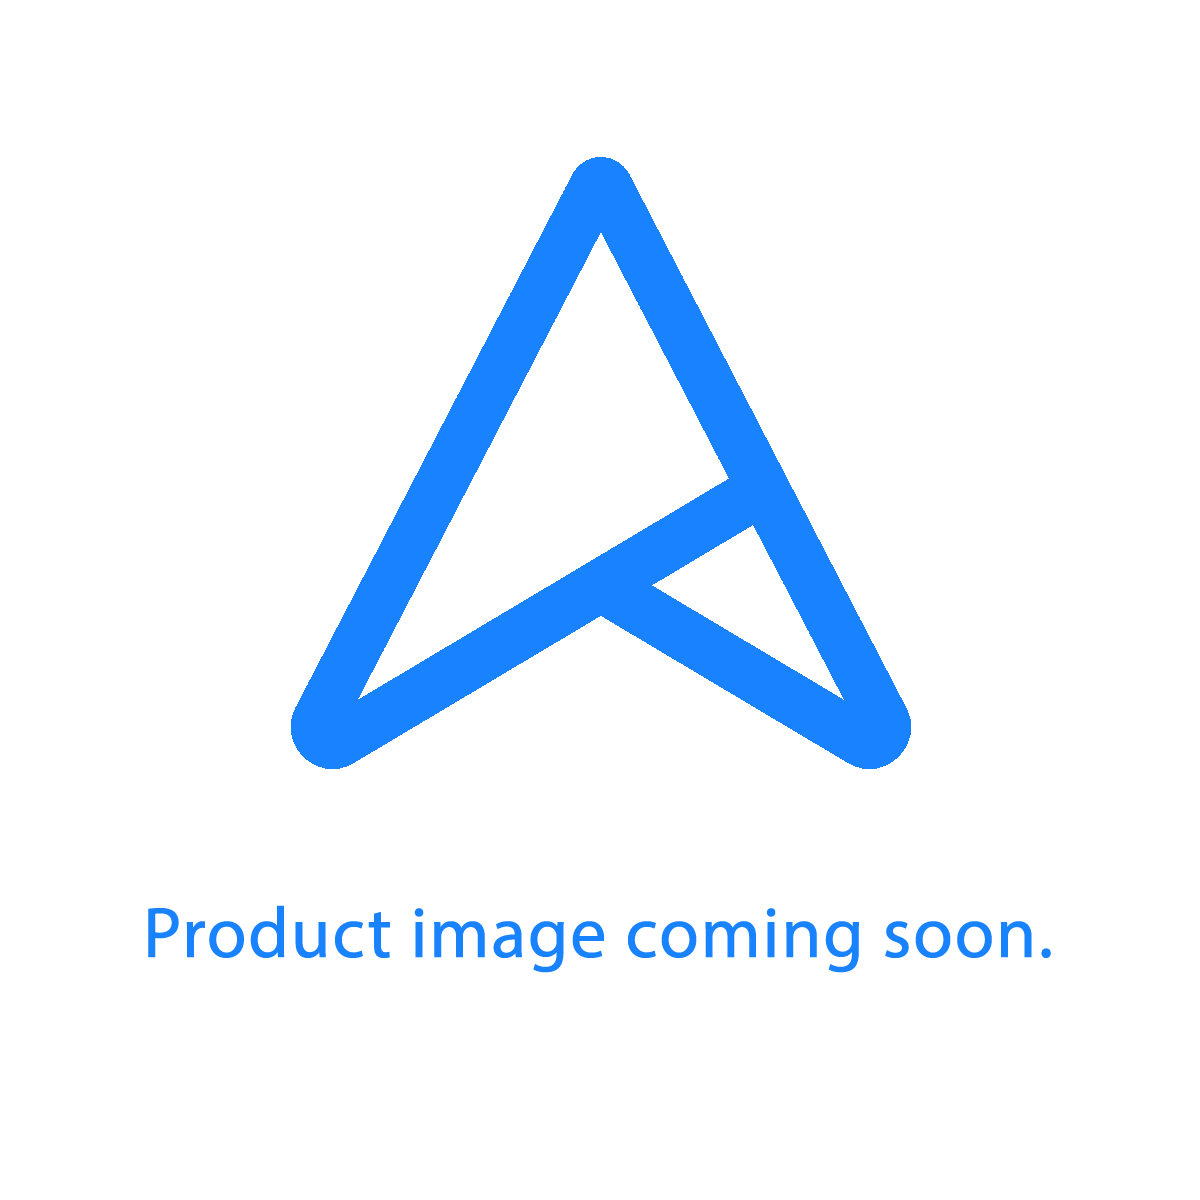 ROG Zephyrus G14 GA401QM-RTX3060W with AniMe Matrix™